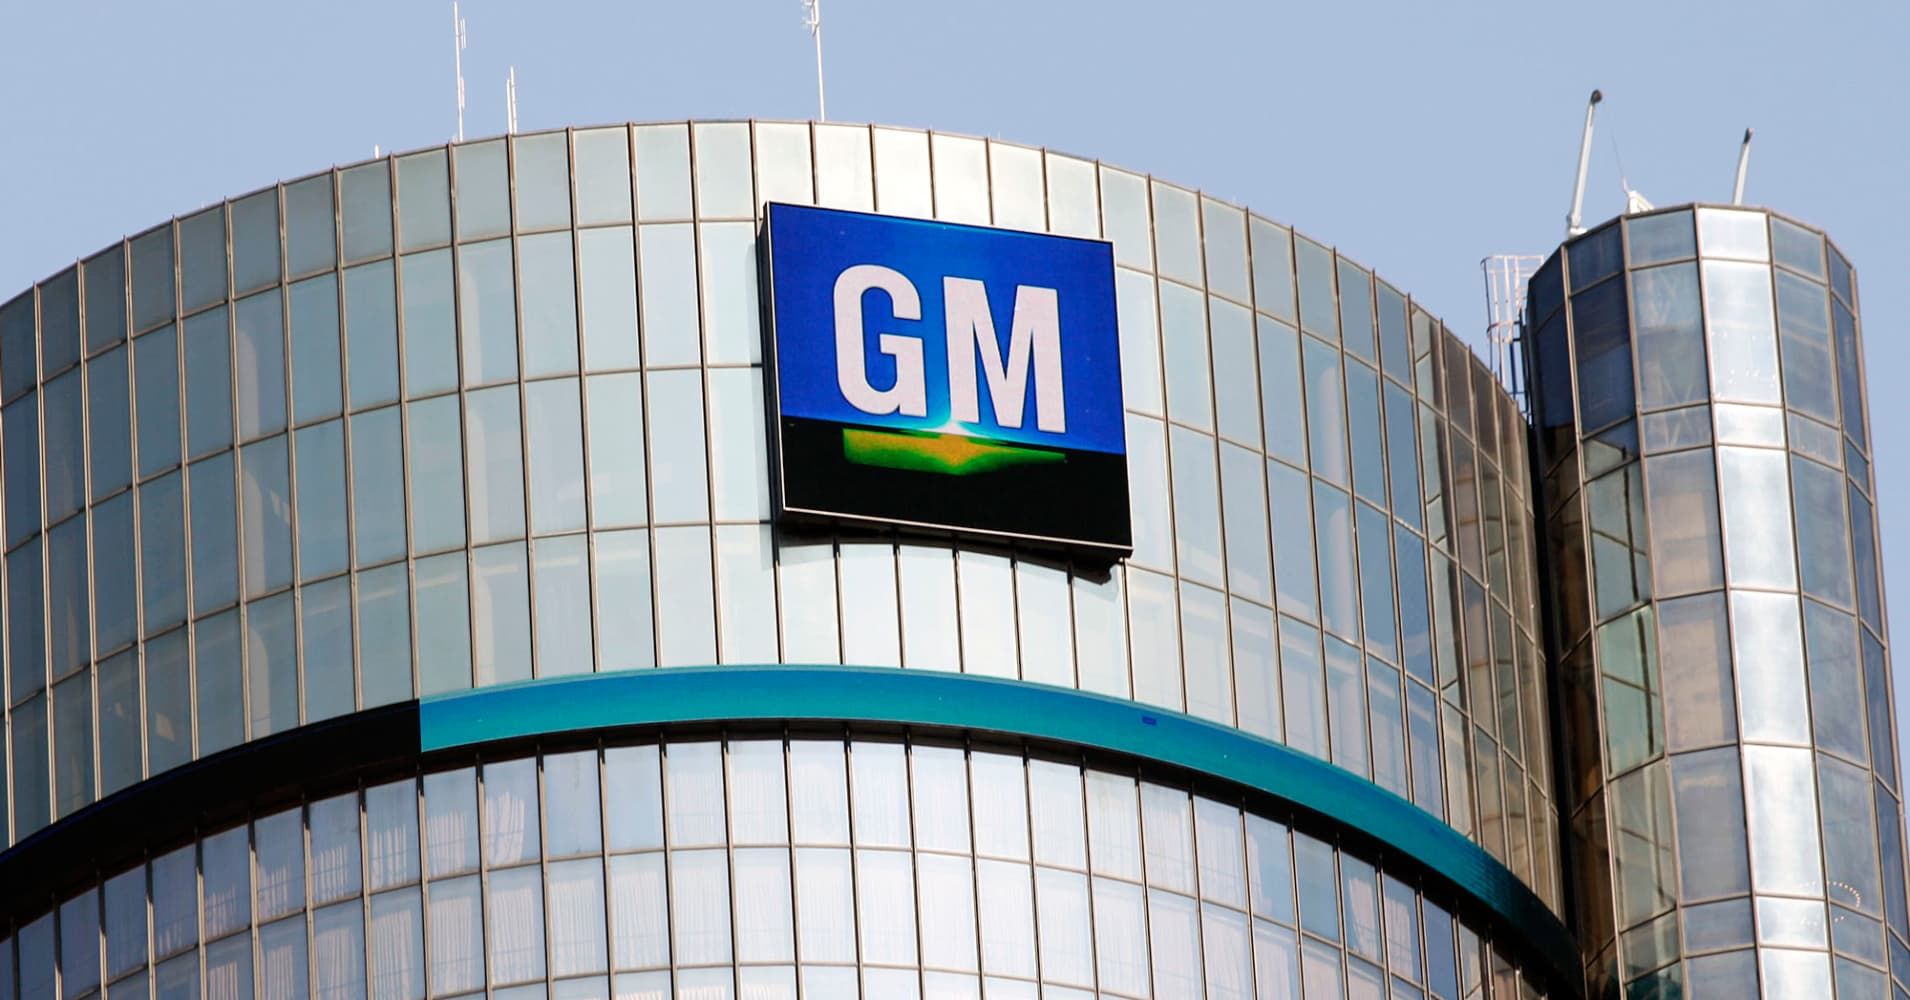 GM and China joint venture to recall more than 2.5 million vehicles over airbags, watchdog says